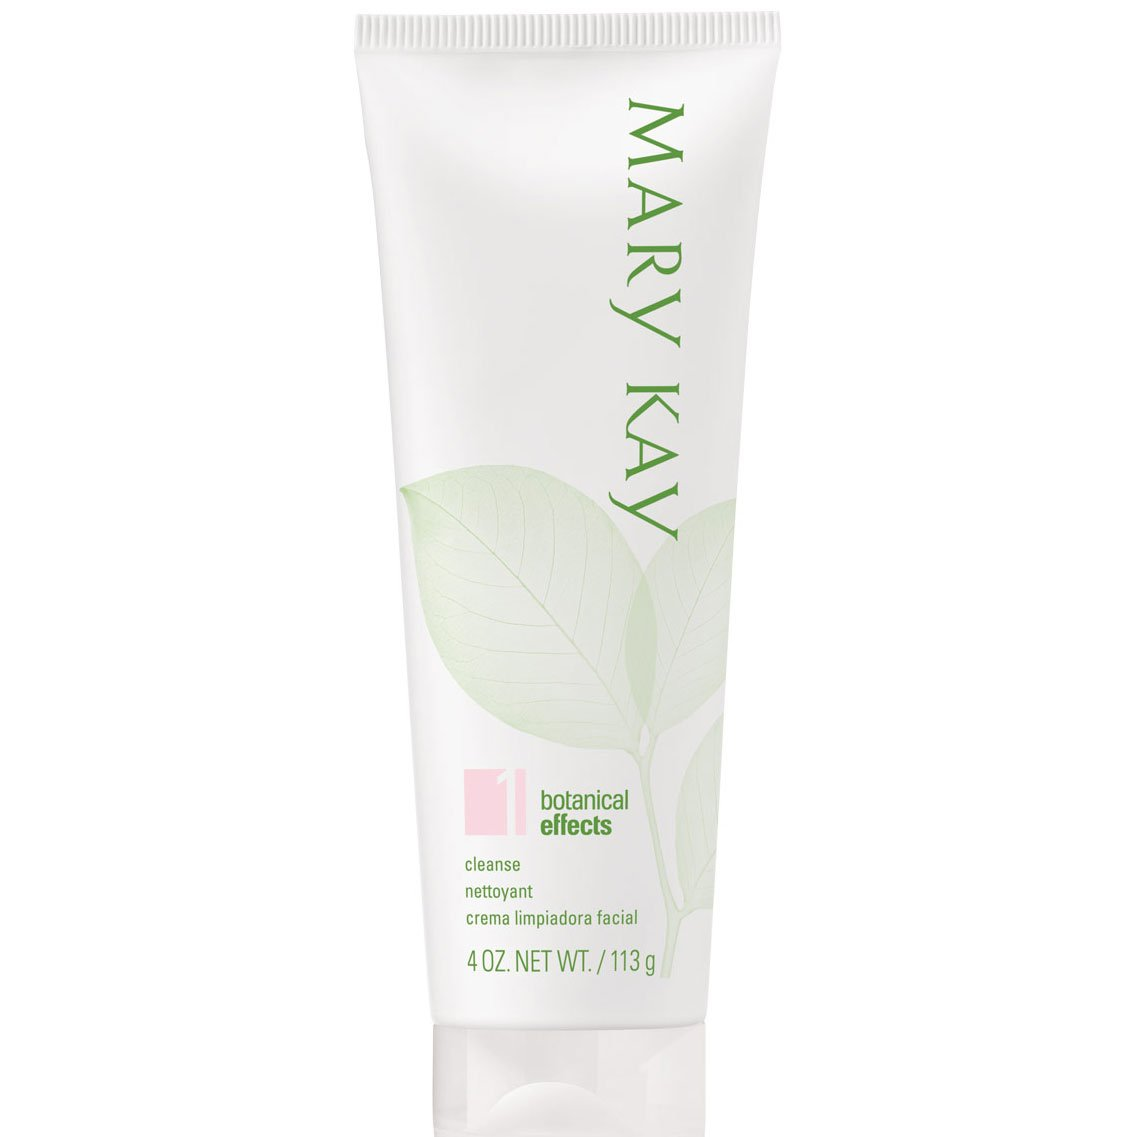 Mary Kay Botanical Effects Facial Cleanse Formula 1 4 oz. Net Wt / 113 g - Dry Skin